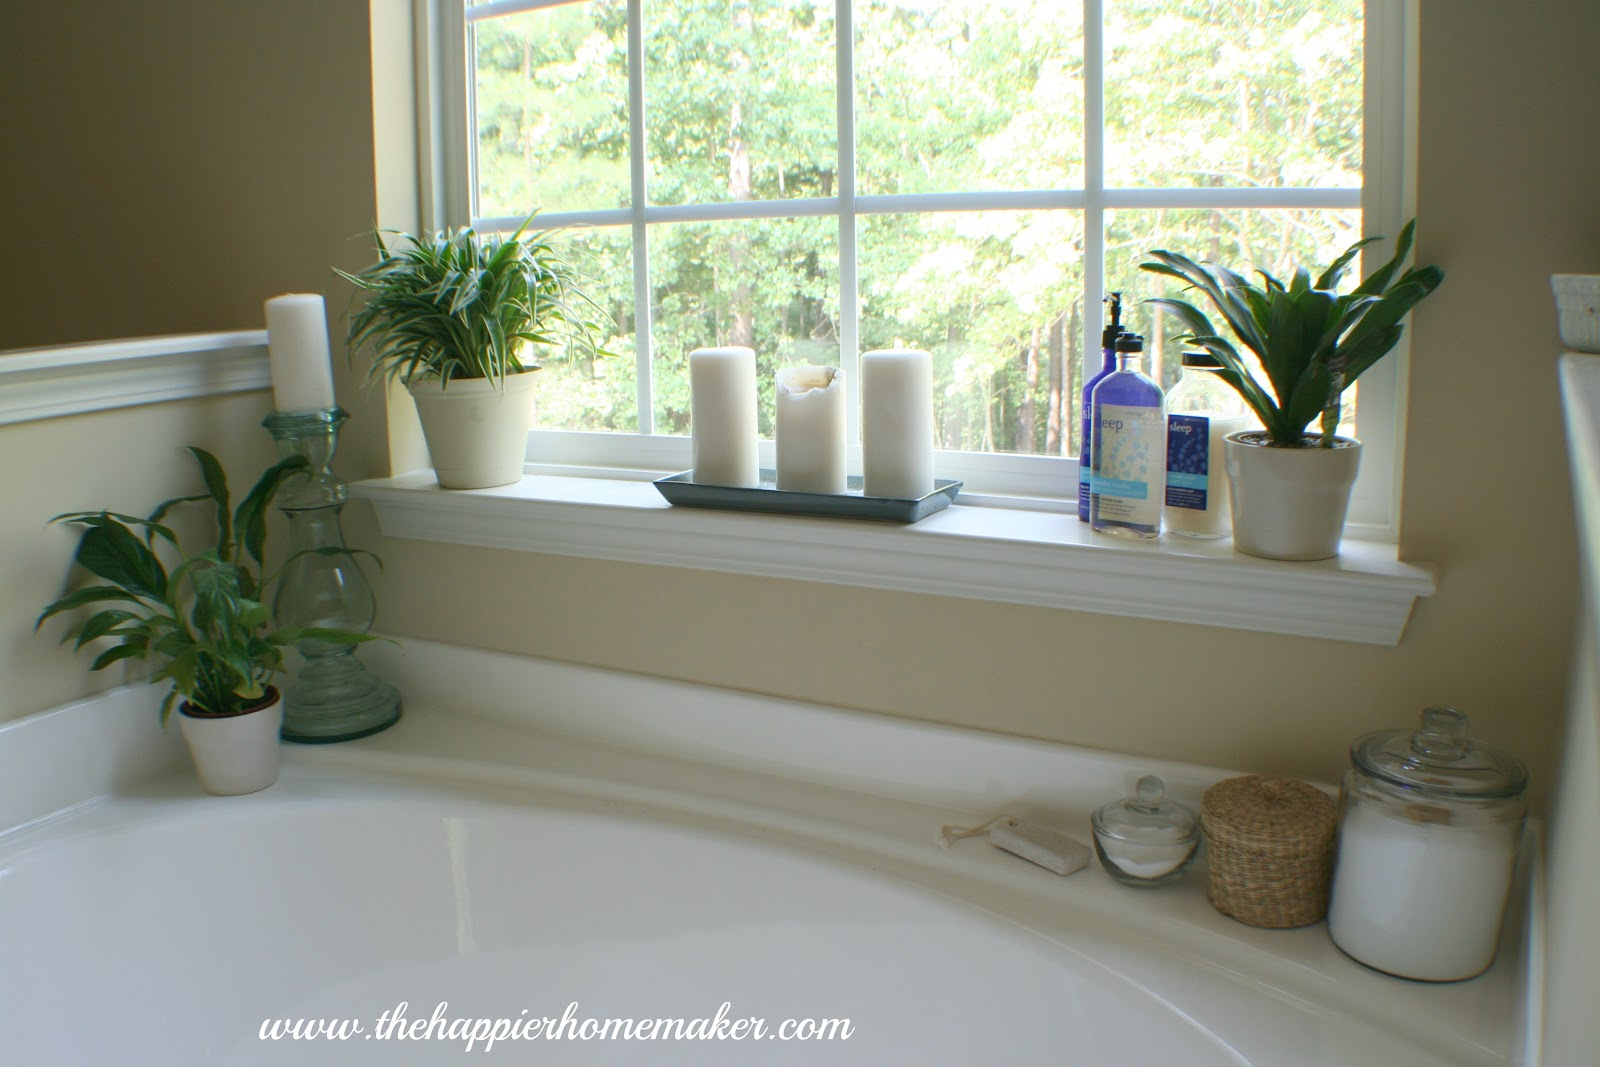 13 best images about Garden tub decor on Pinterest ...